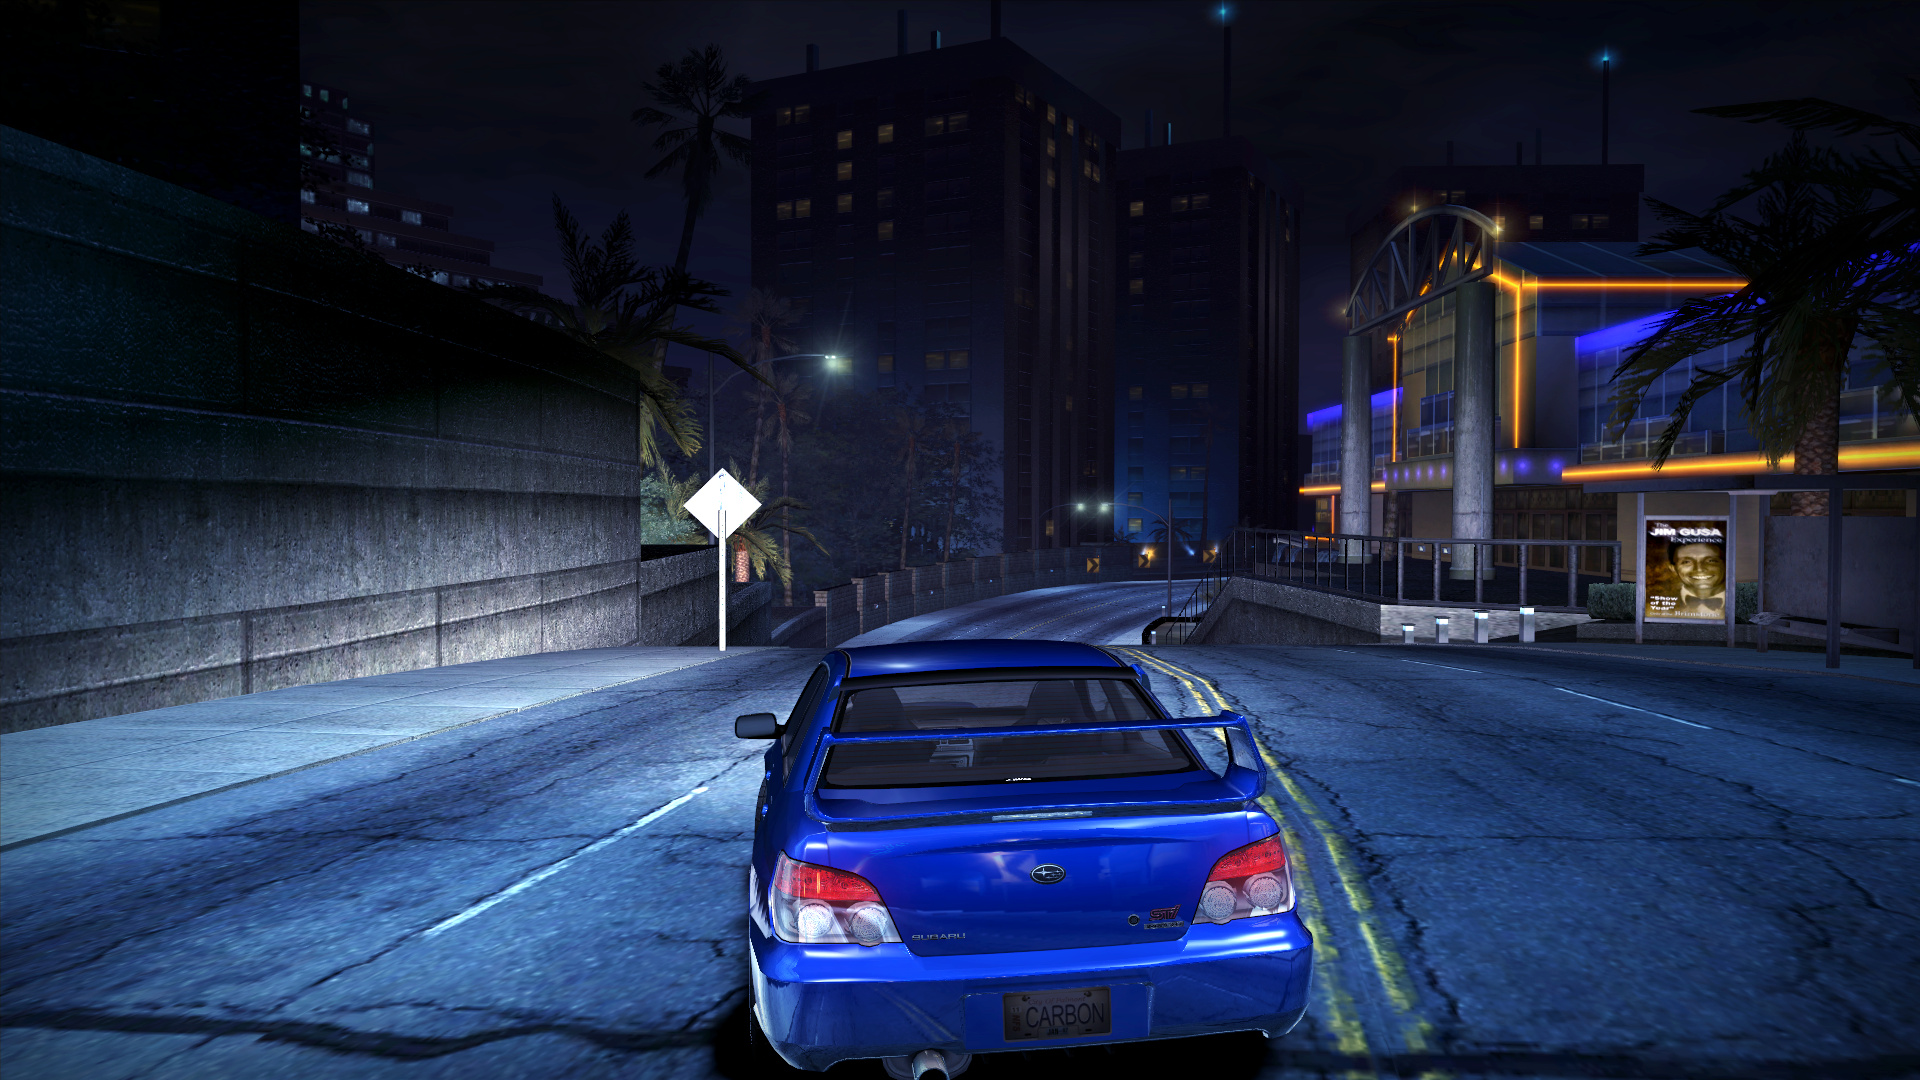 NFSC 2016-12-17 15-47-15-61.jpg - Need for Speed: Carbon